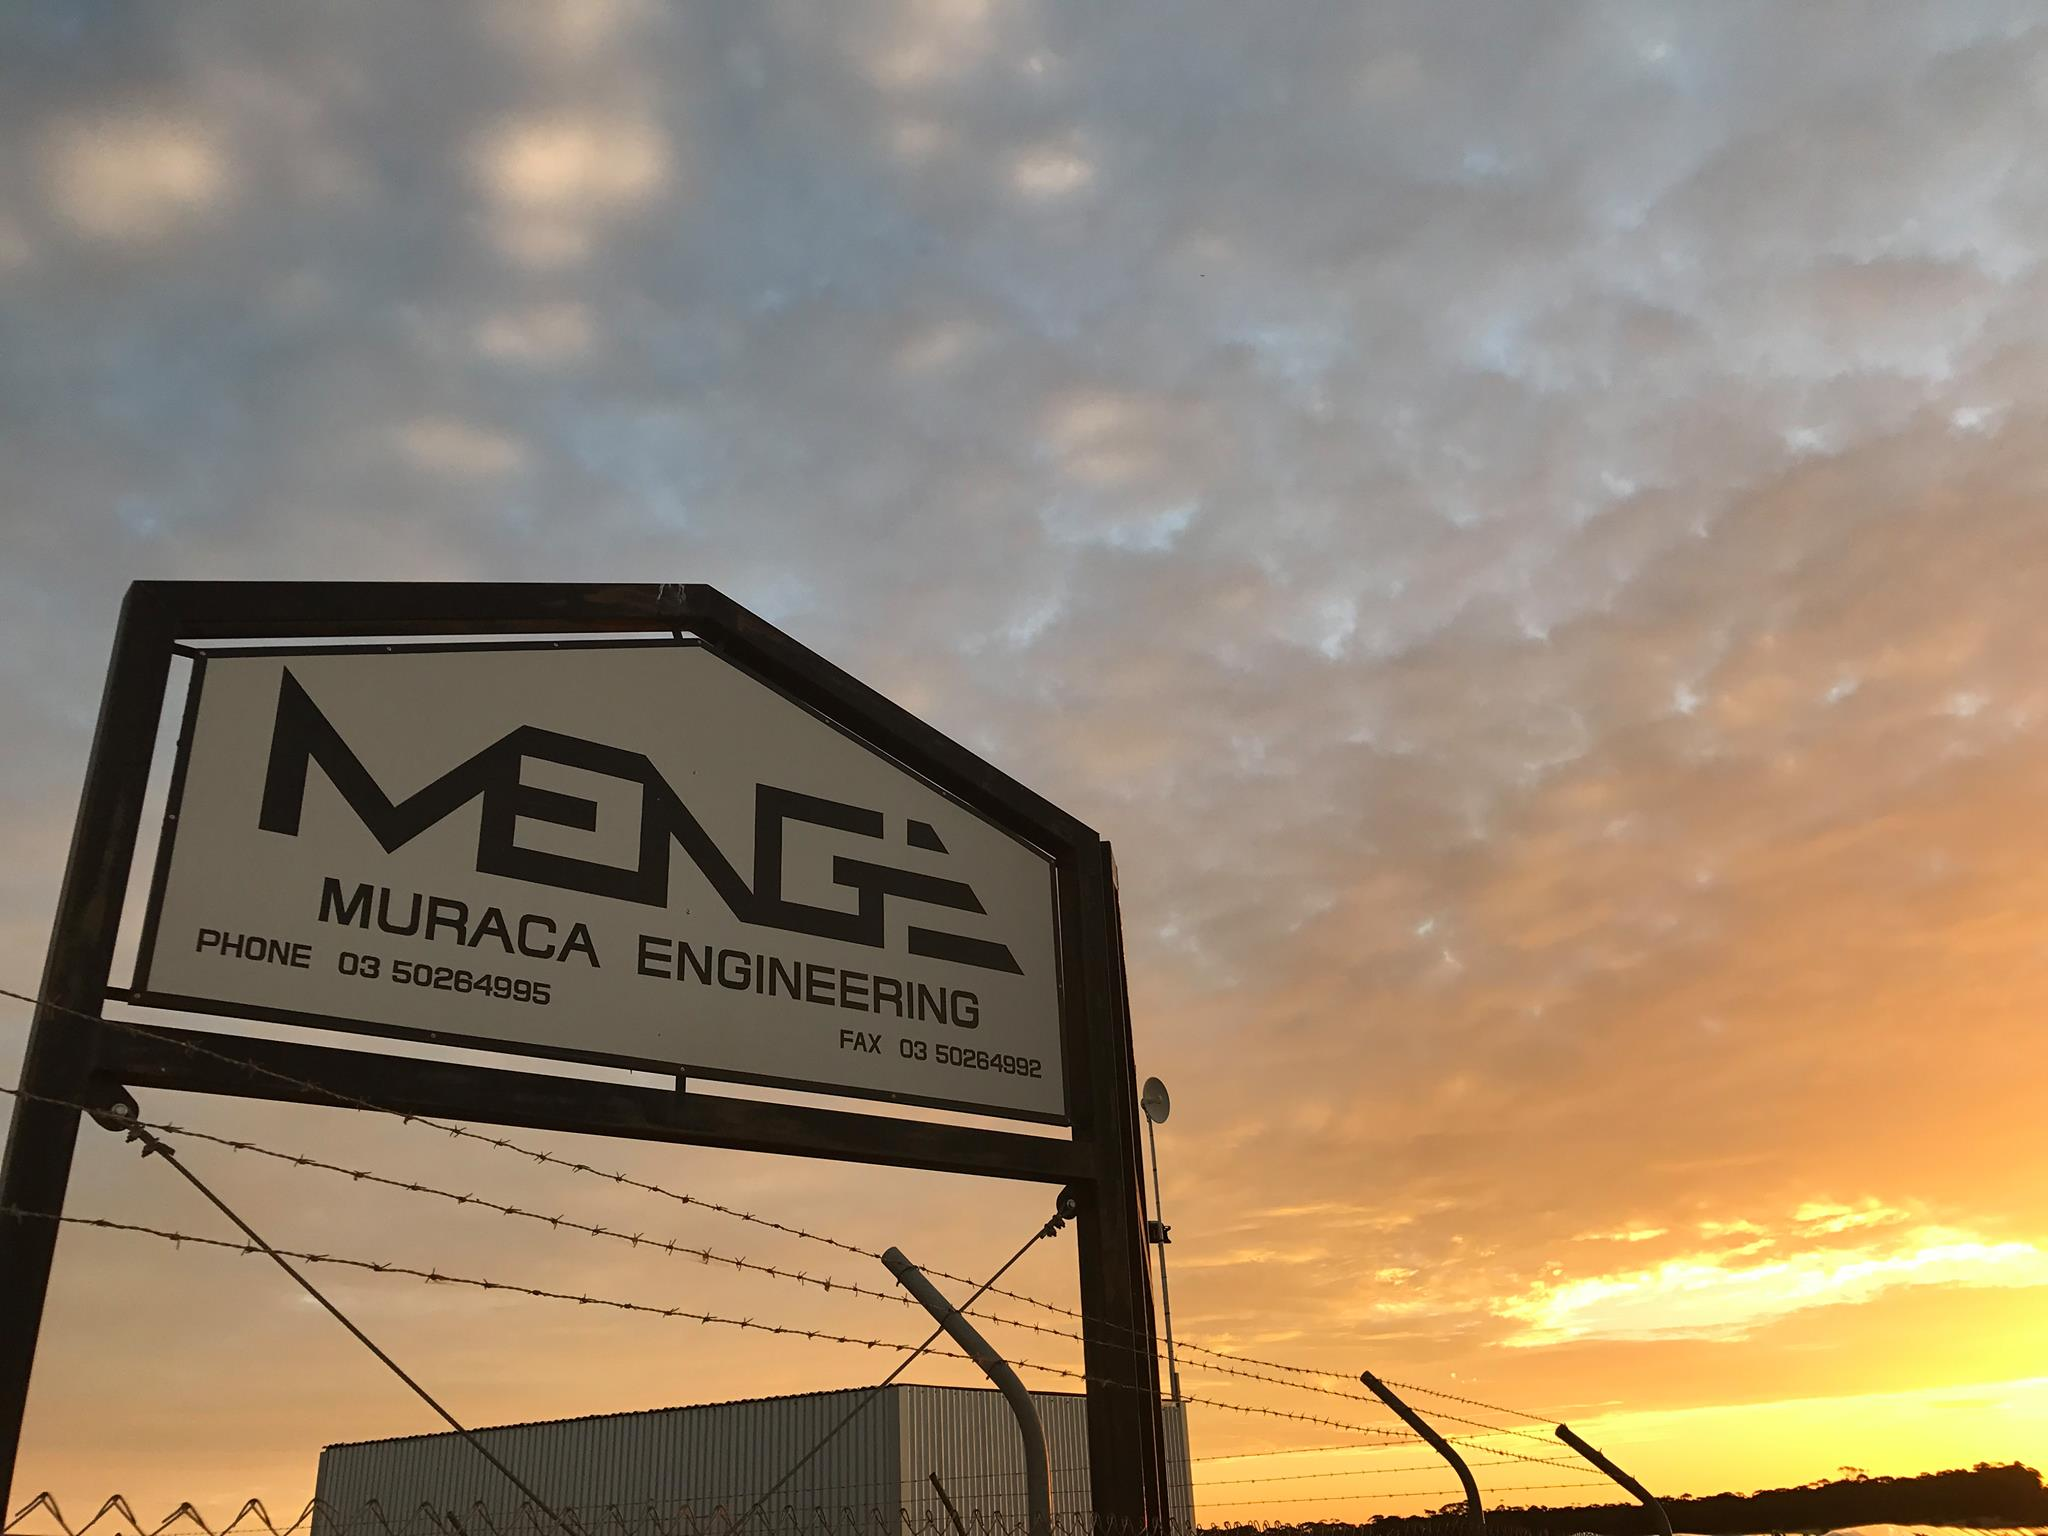 Muraca Engineering